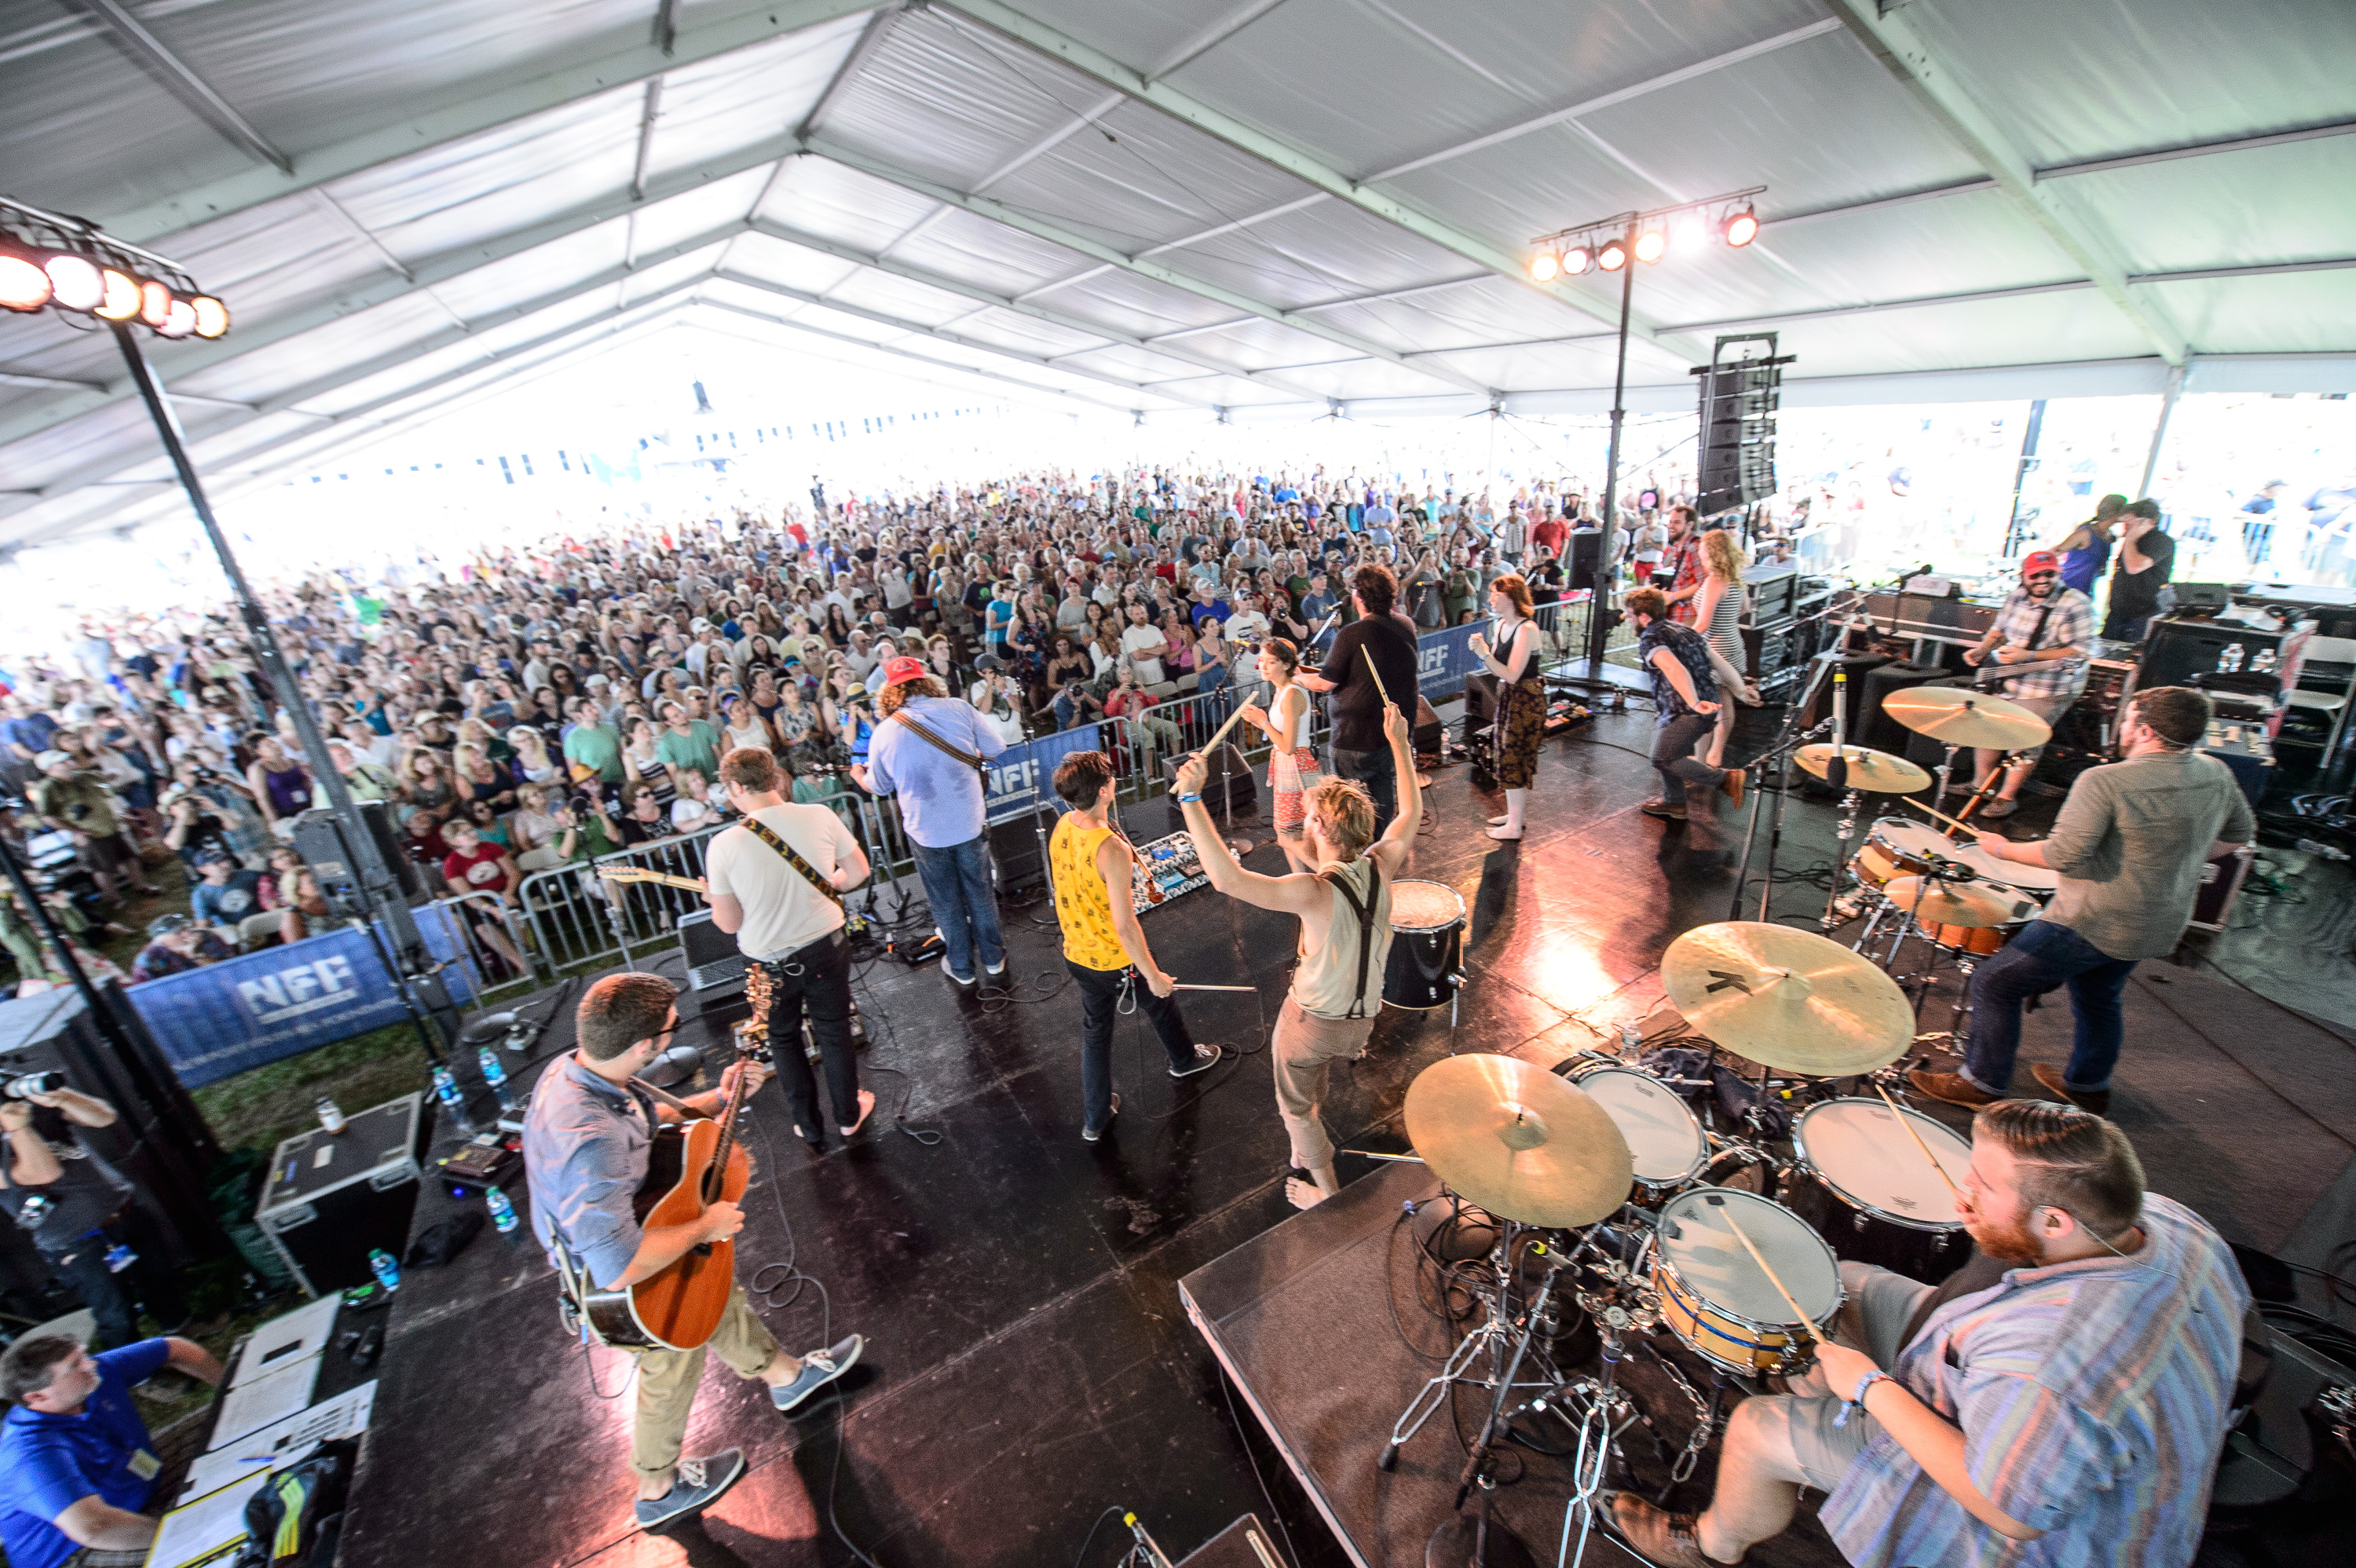 The Oh Hellos perform at the 2014 Newport Folk Festival